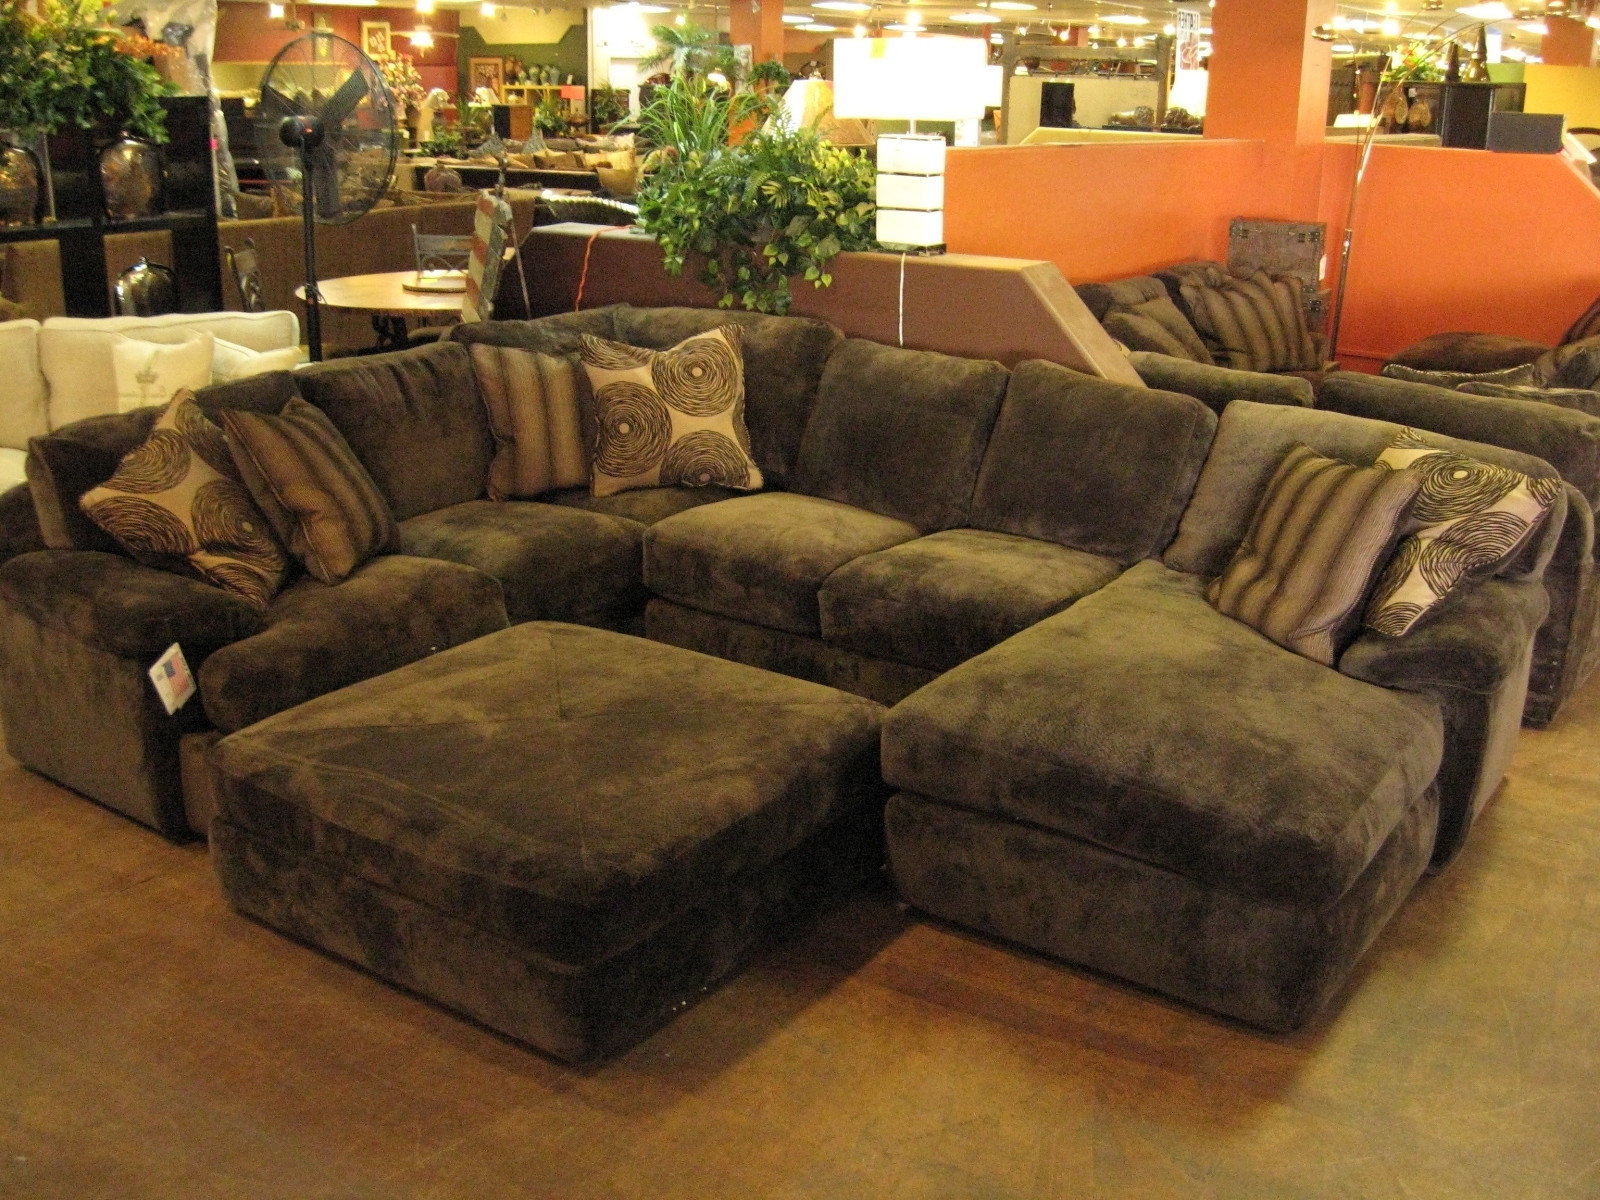 Deep U Shaped Sectionals With Regard To Most Current Extra Deep U Shaped Sofa With Chaise And Ottoman Of Gorgeous Extra (View 4 of 20)